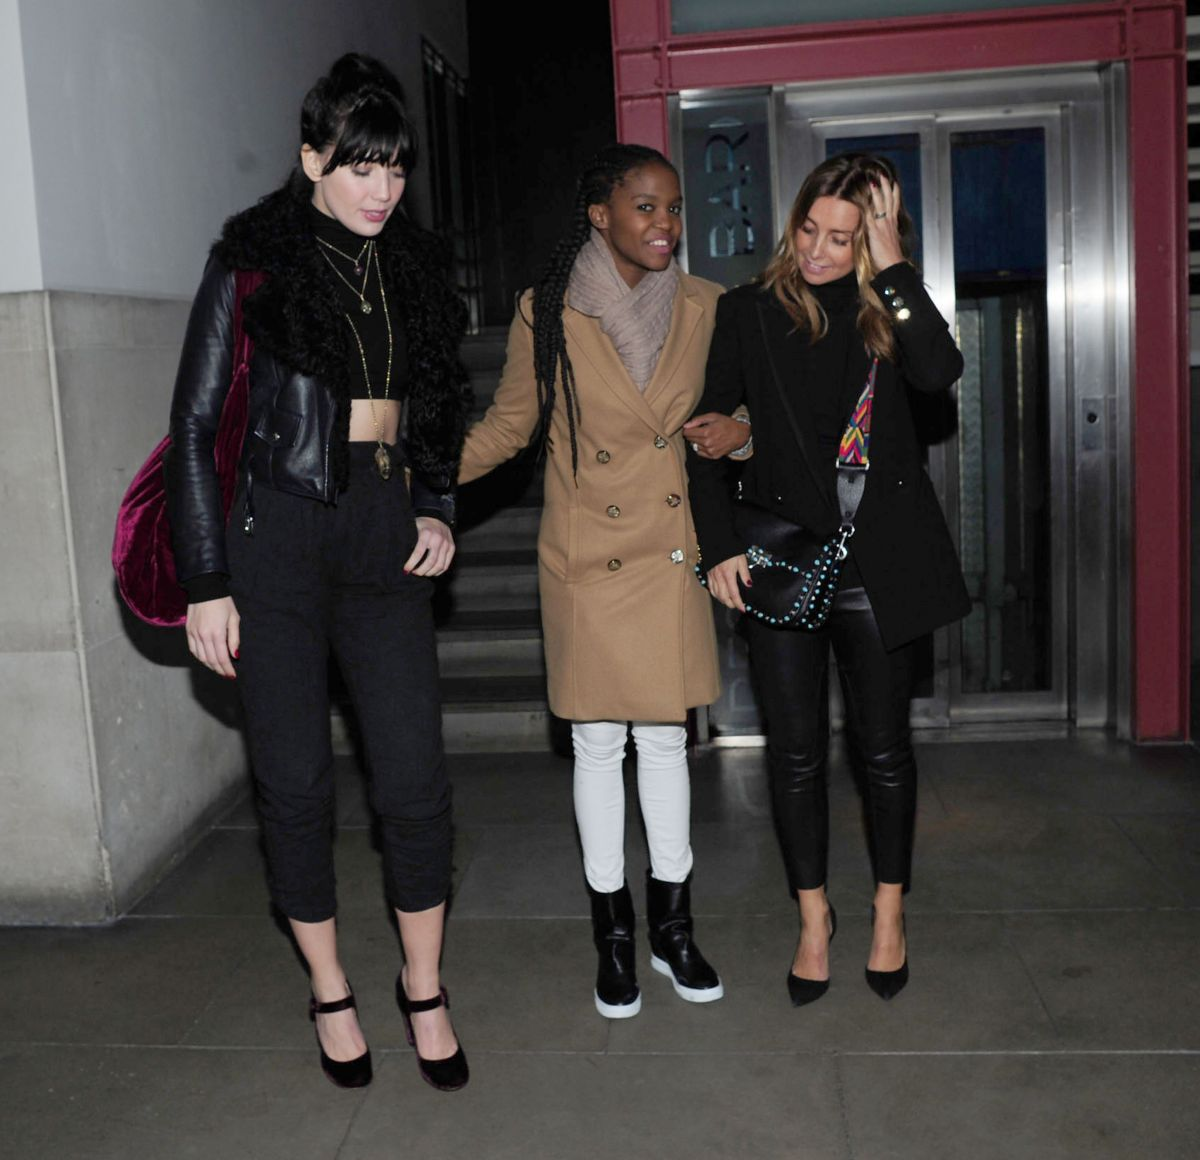 DIASY LOWE, OTI MABUSE and LOUISE REDKNAPP Night Out in London 02/24/2017